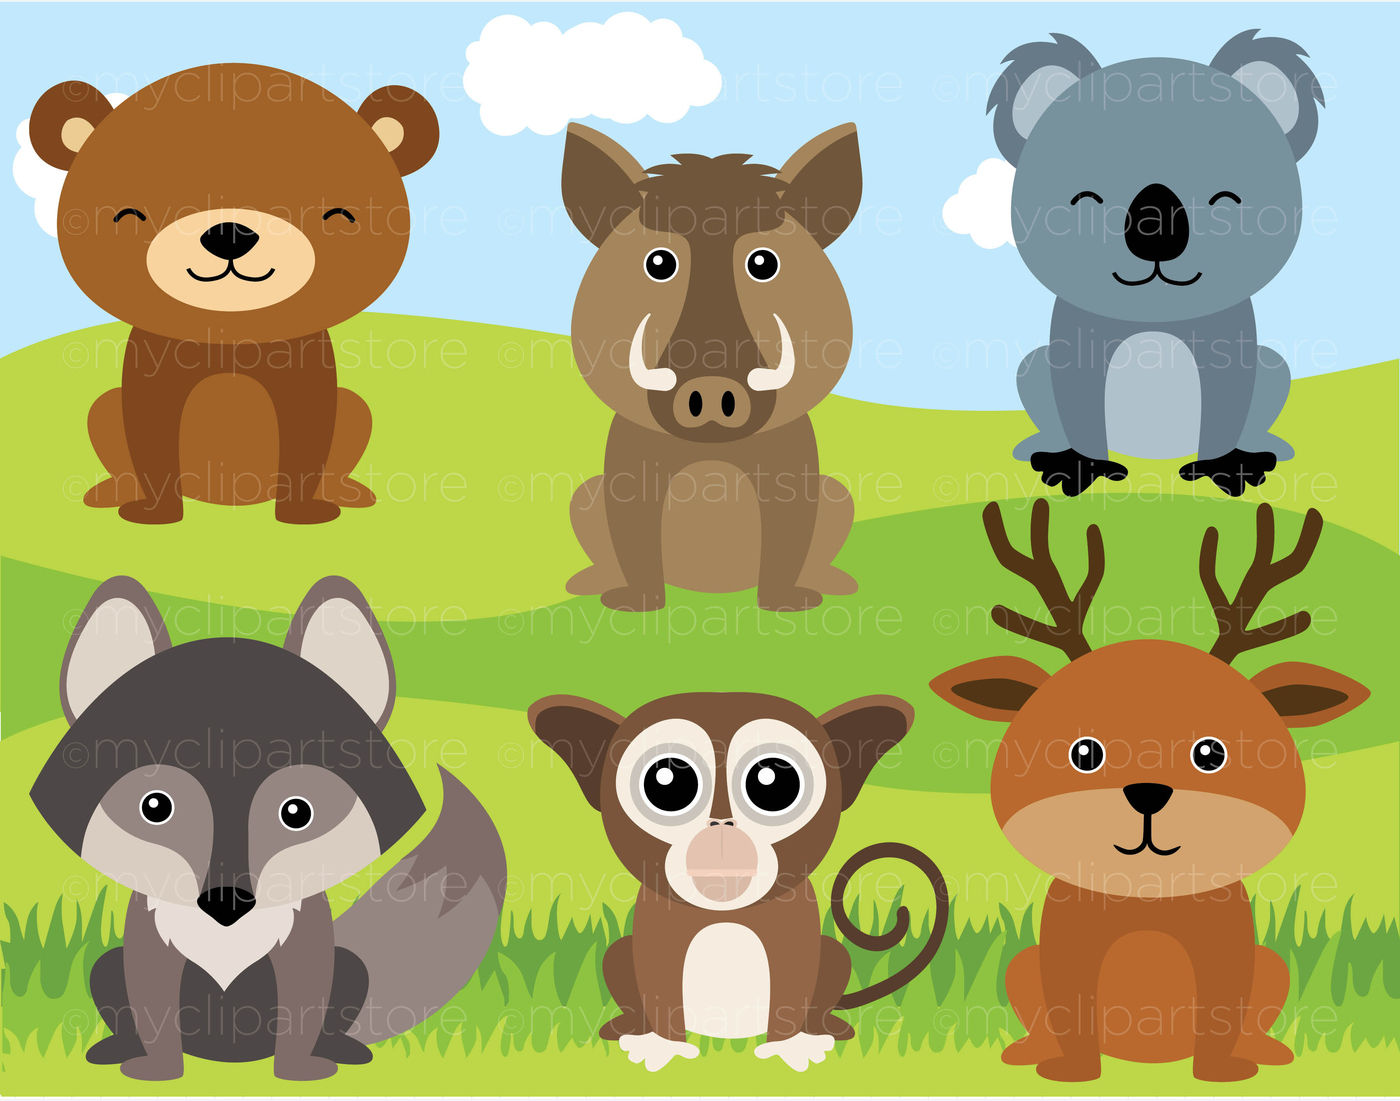 Woodland Animals Vector Clipart By Myclipartstore Thehungryjpeg Com